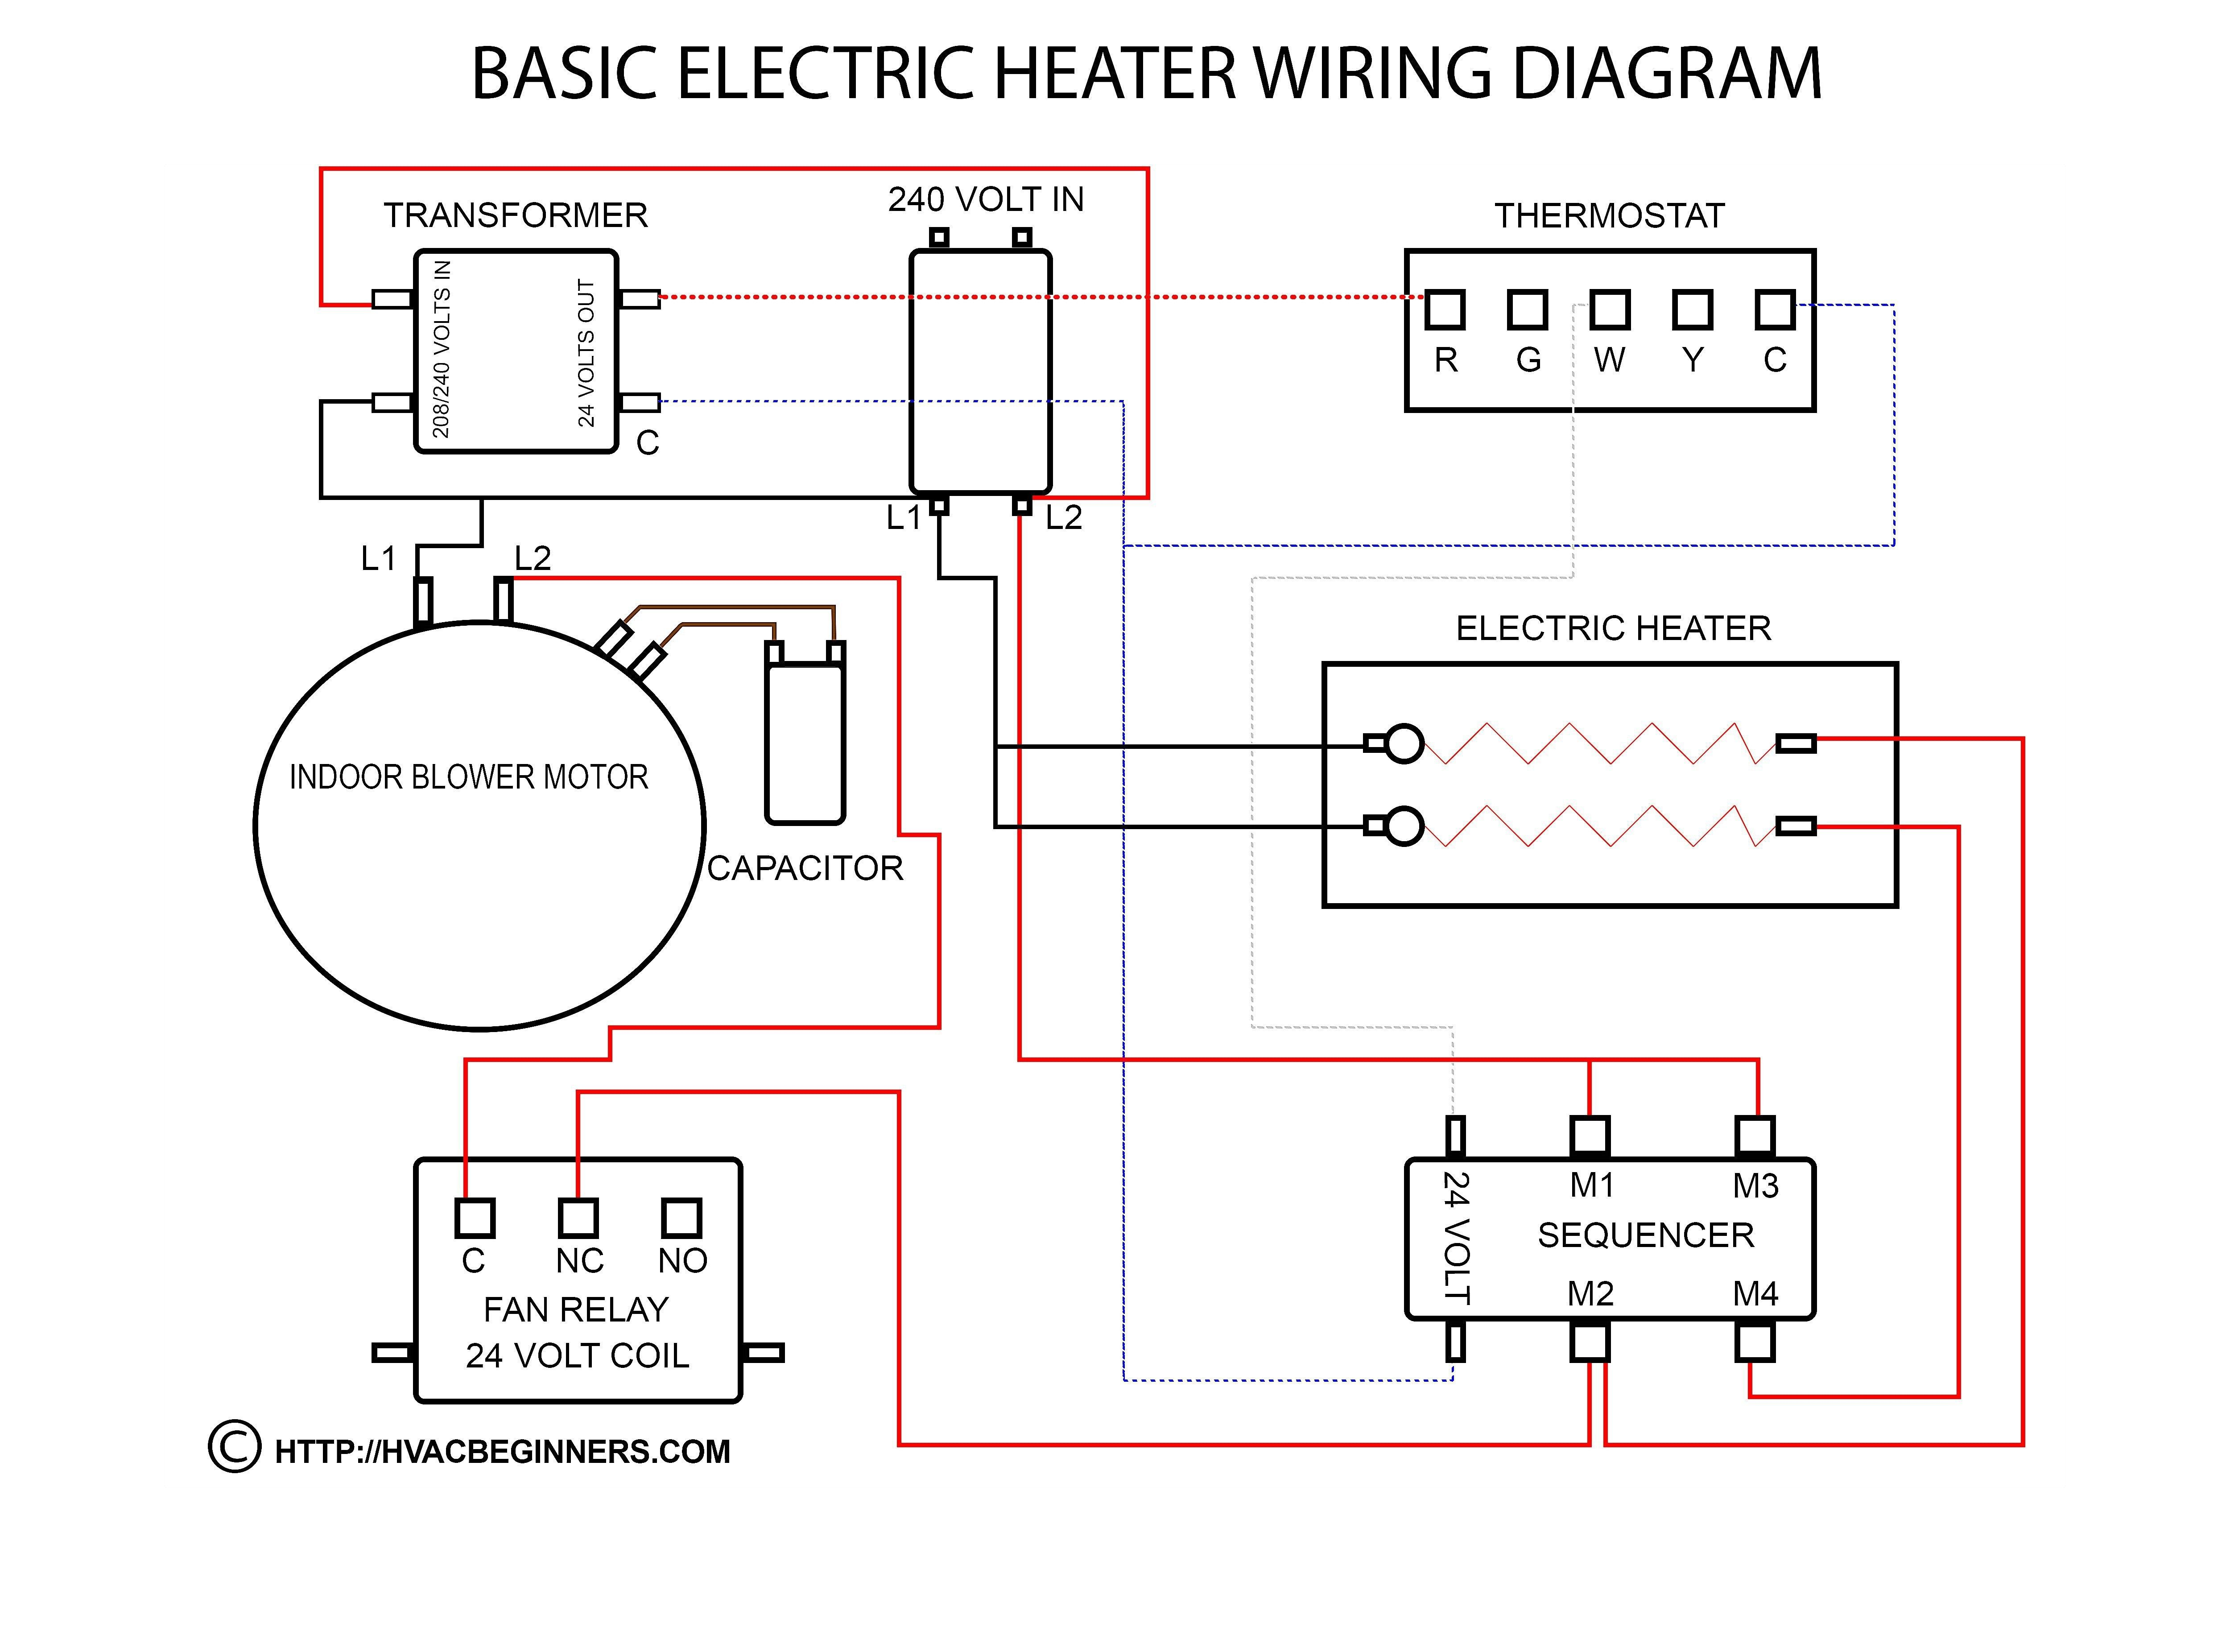 small resolution of unique home wiring diagram sample diagram diagramsample diagramtemplate wiringdiagram diagramchart worksheet worksheettemplate